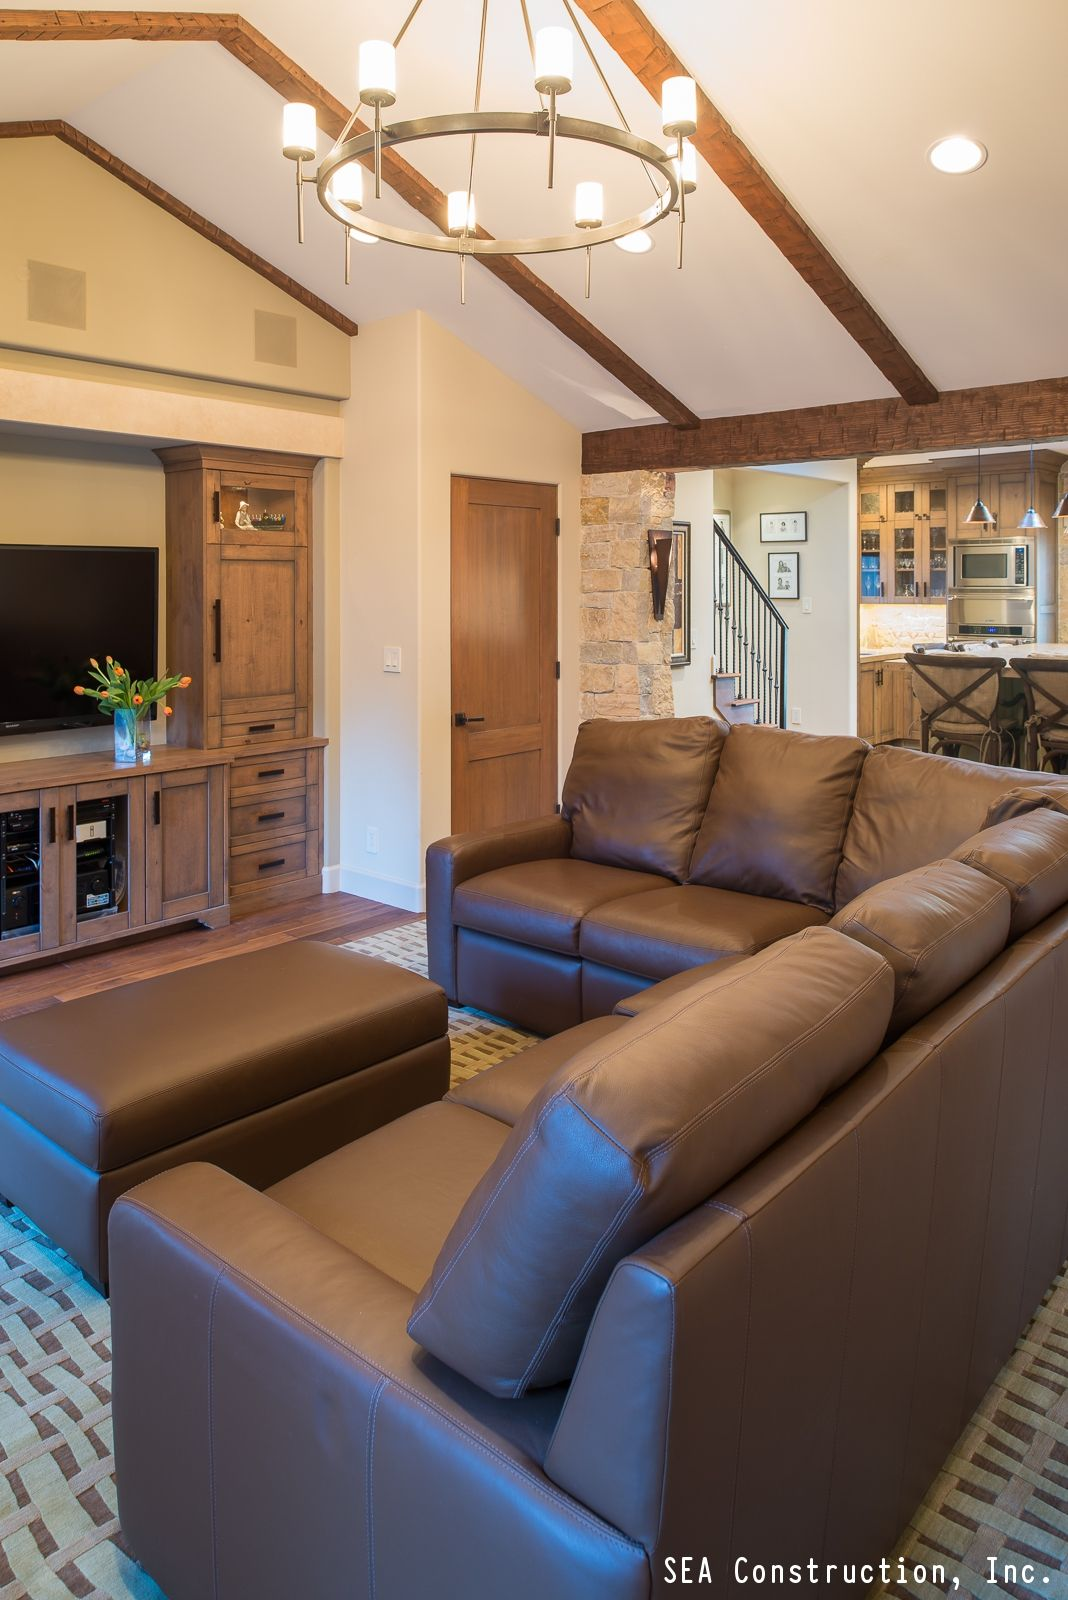 Adding a focal point to your living room such as a